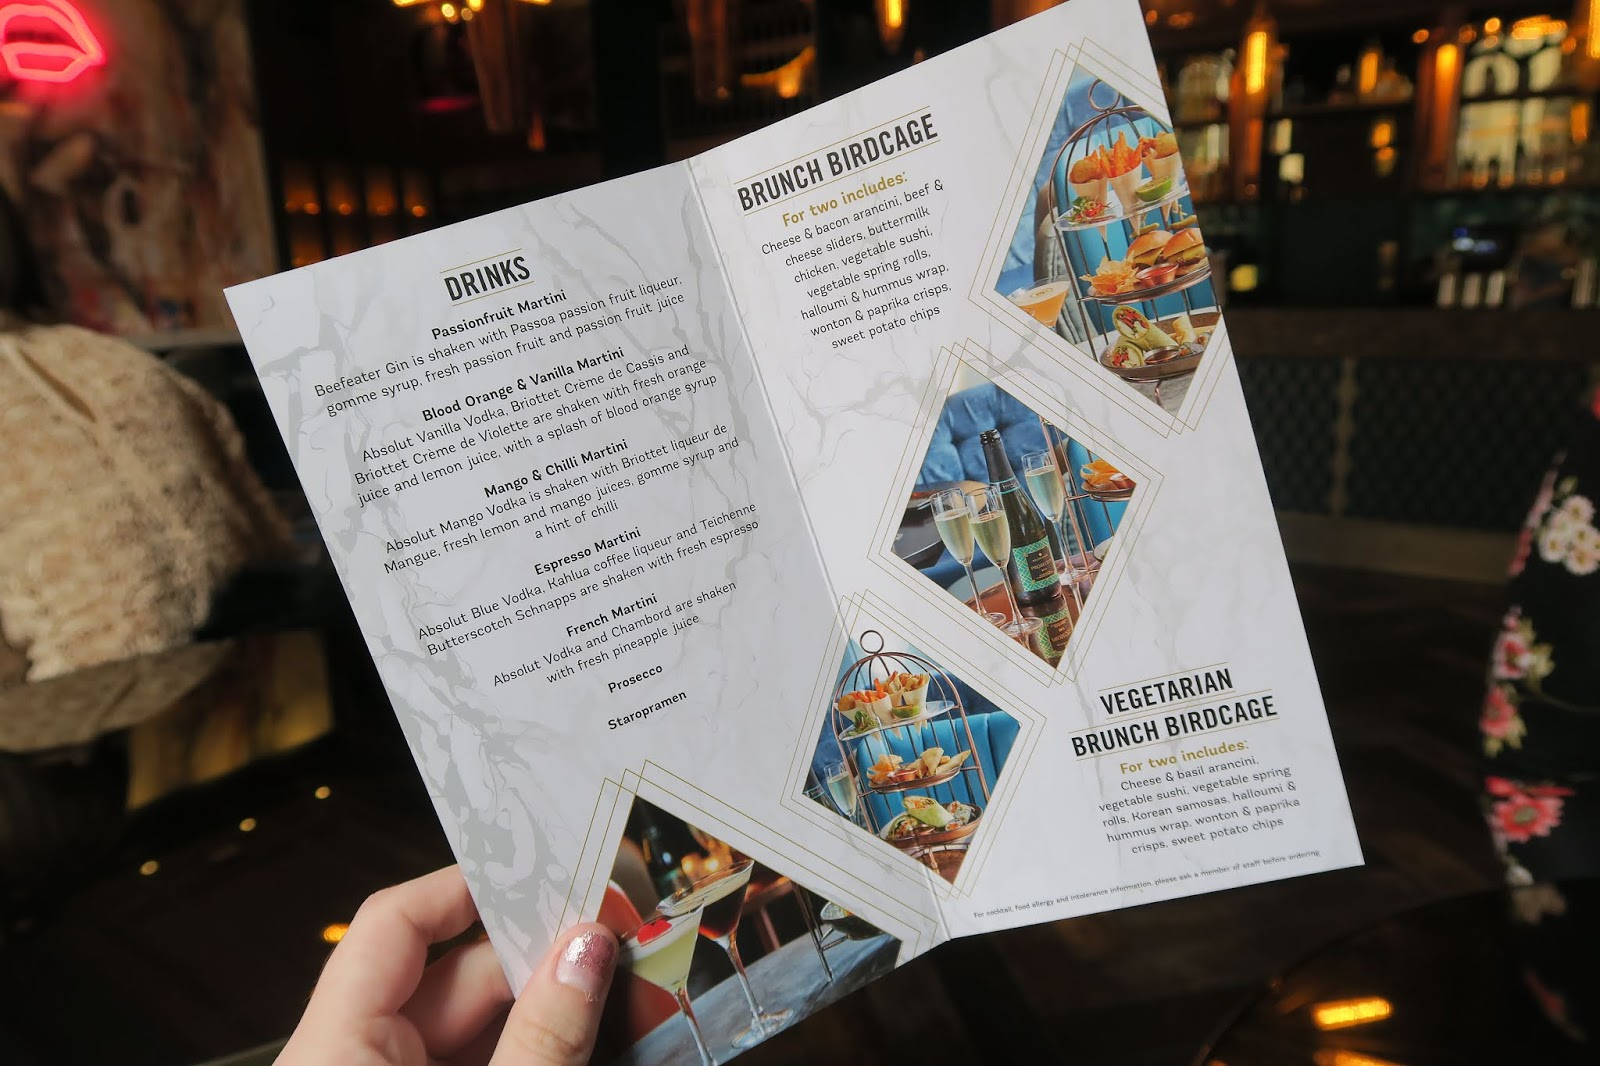 THE DIRTY MARTINI DRINKS MENU